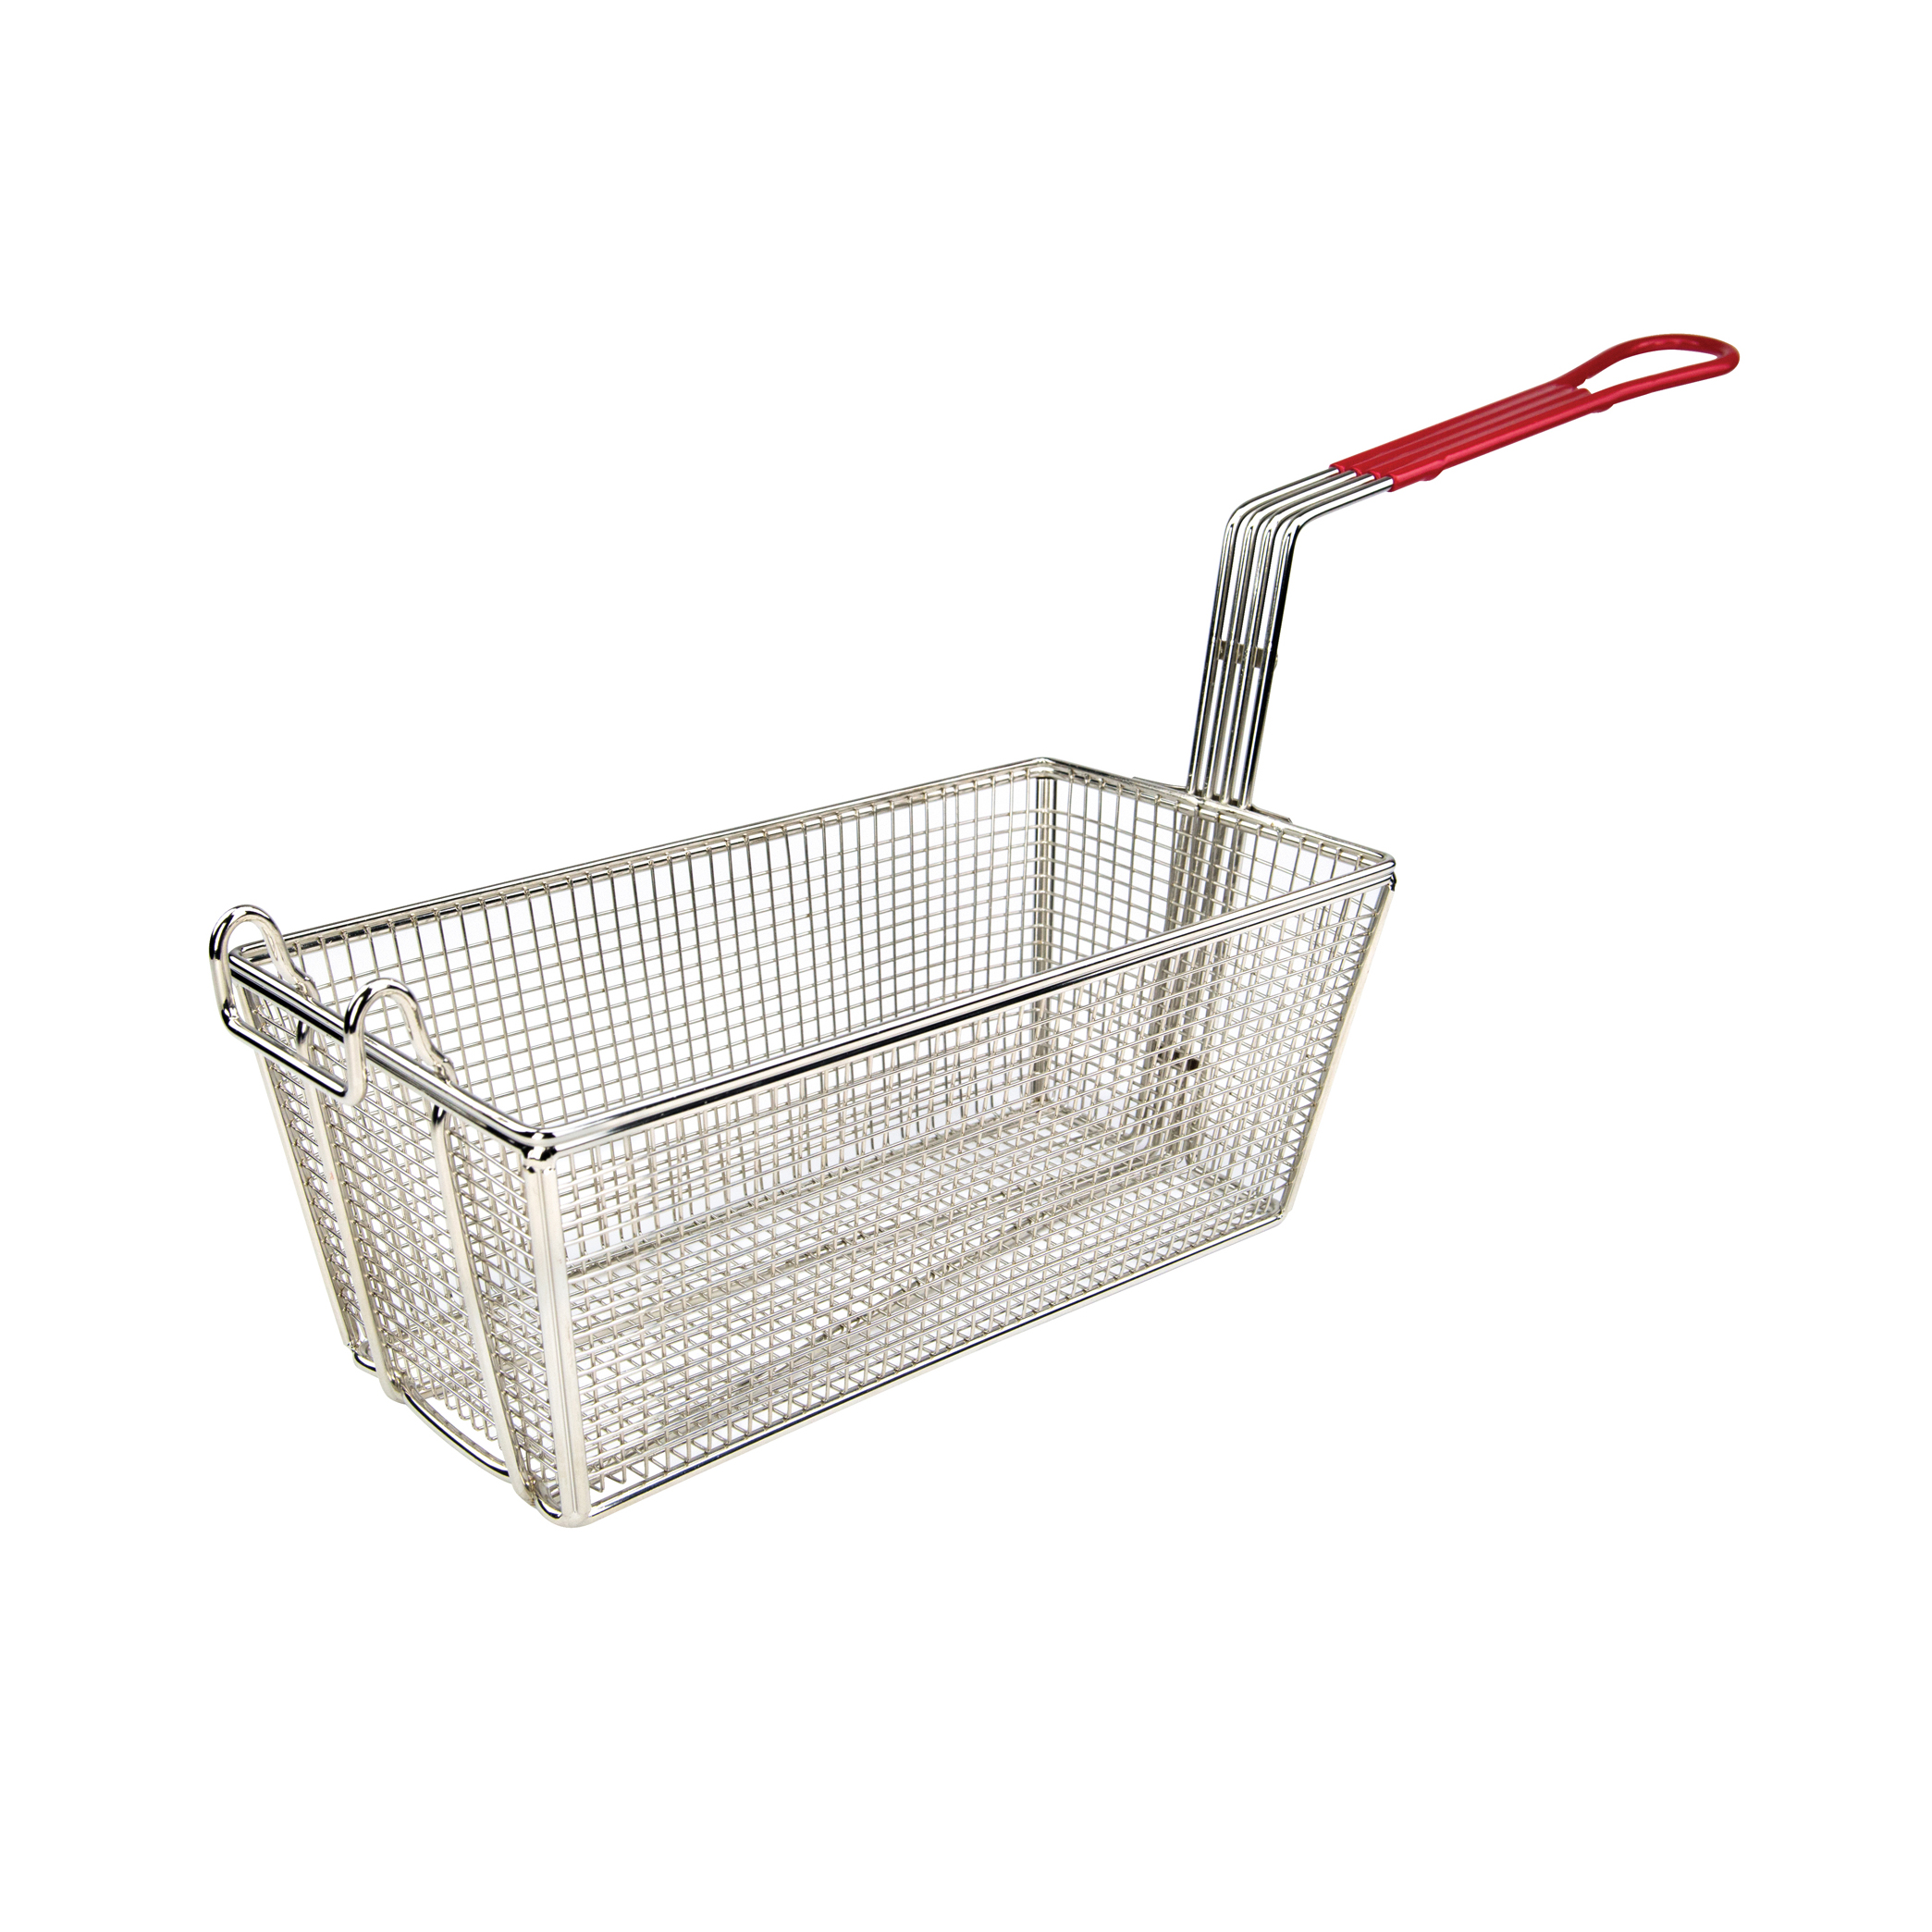 Winco FB-25 fryer basket